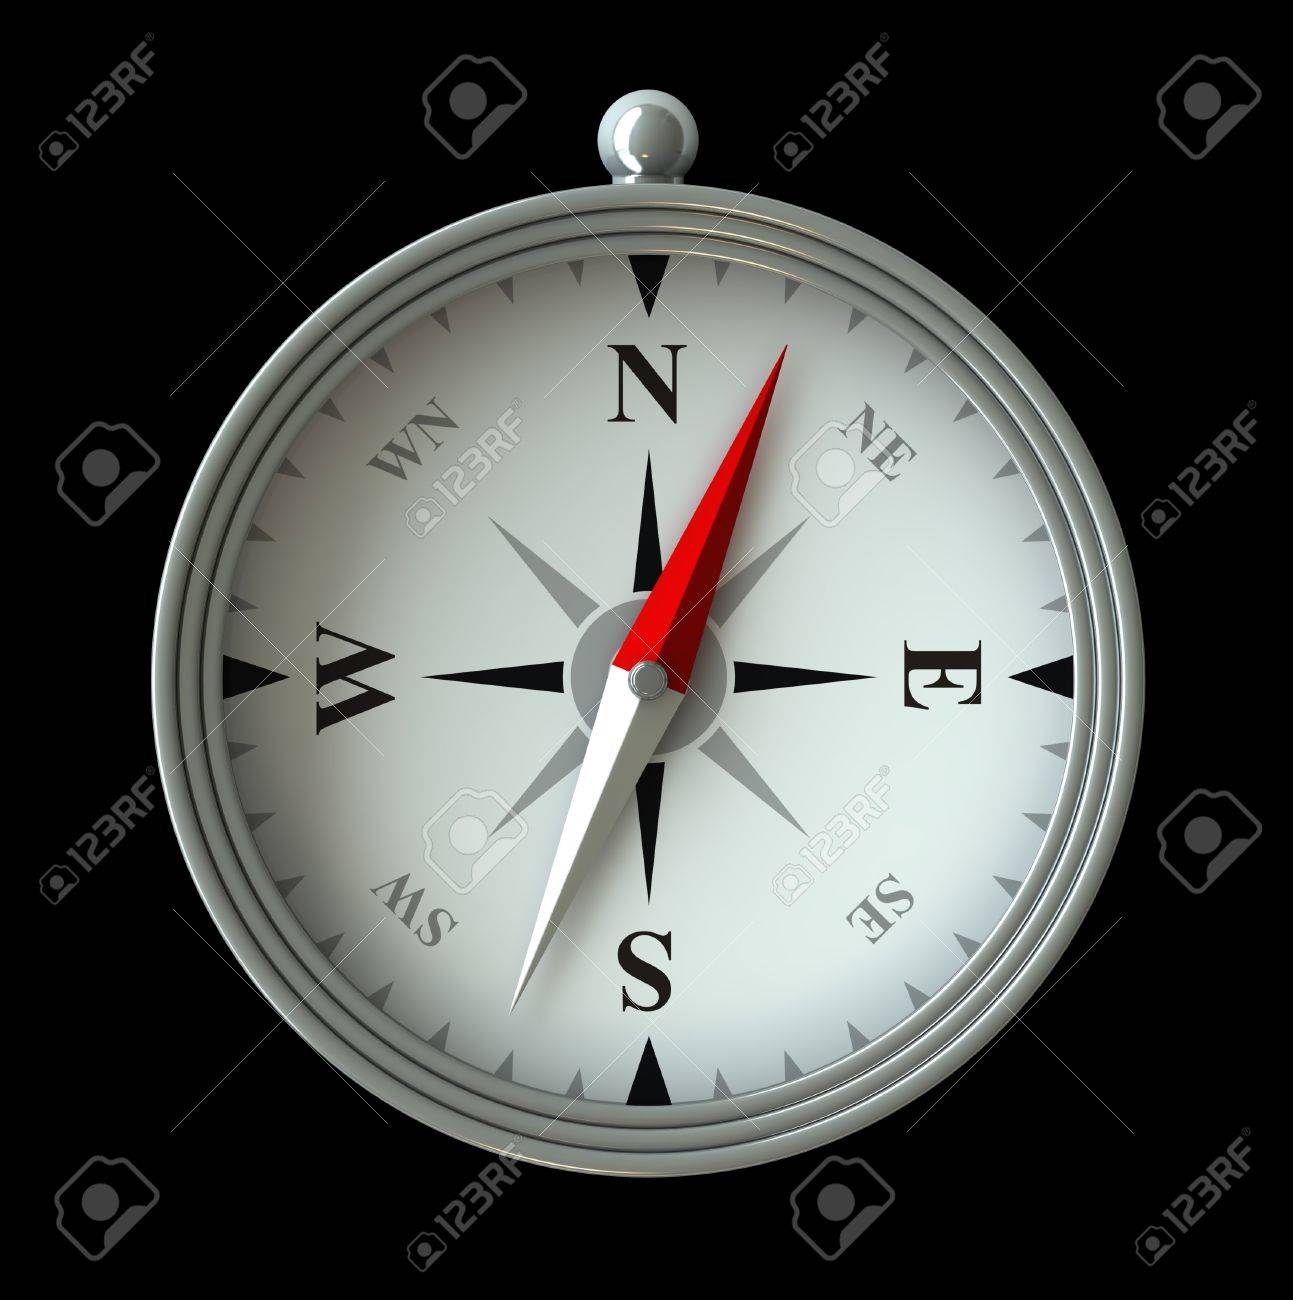 3d render of compass isolated over black background Stock Photo - 12194196